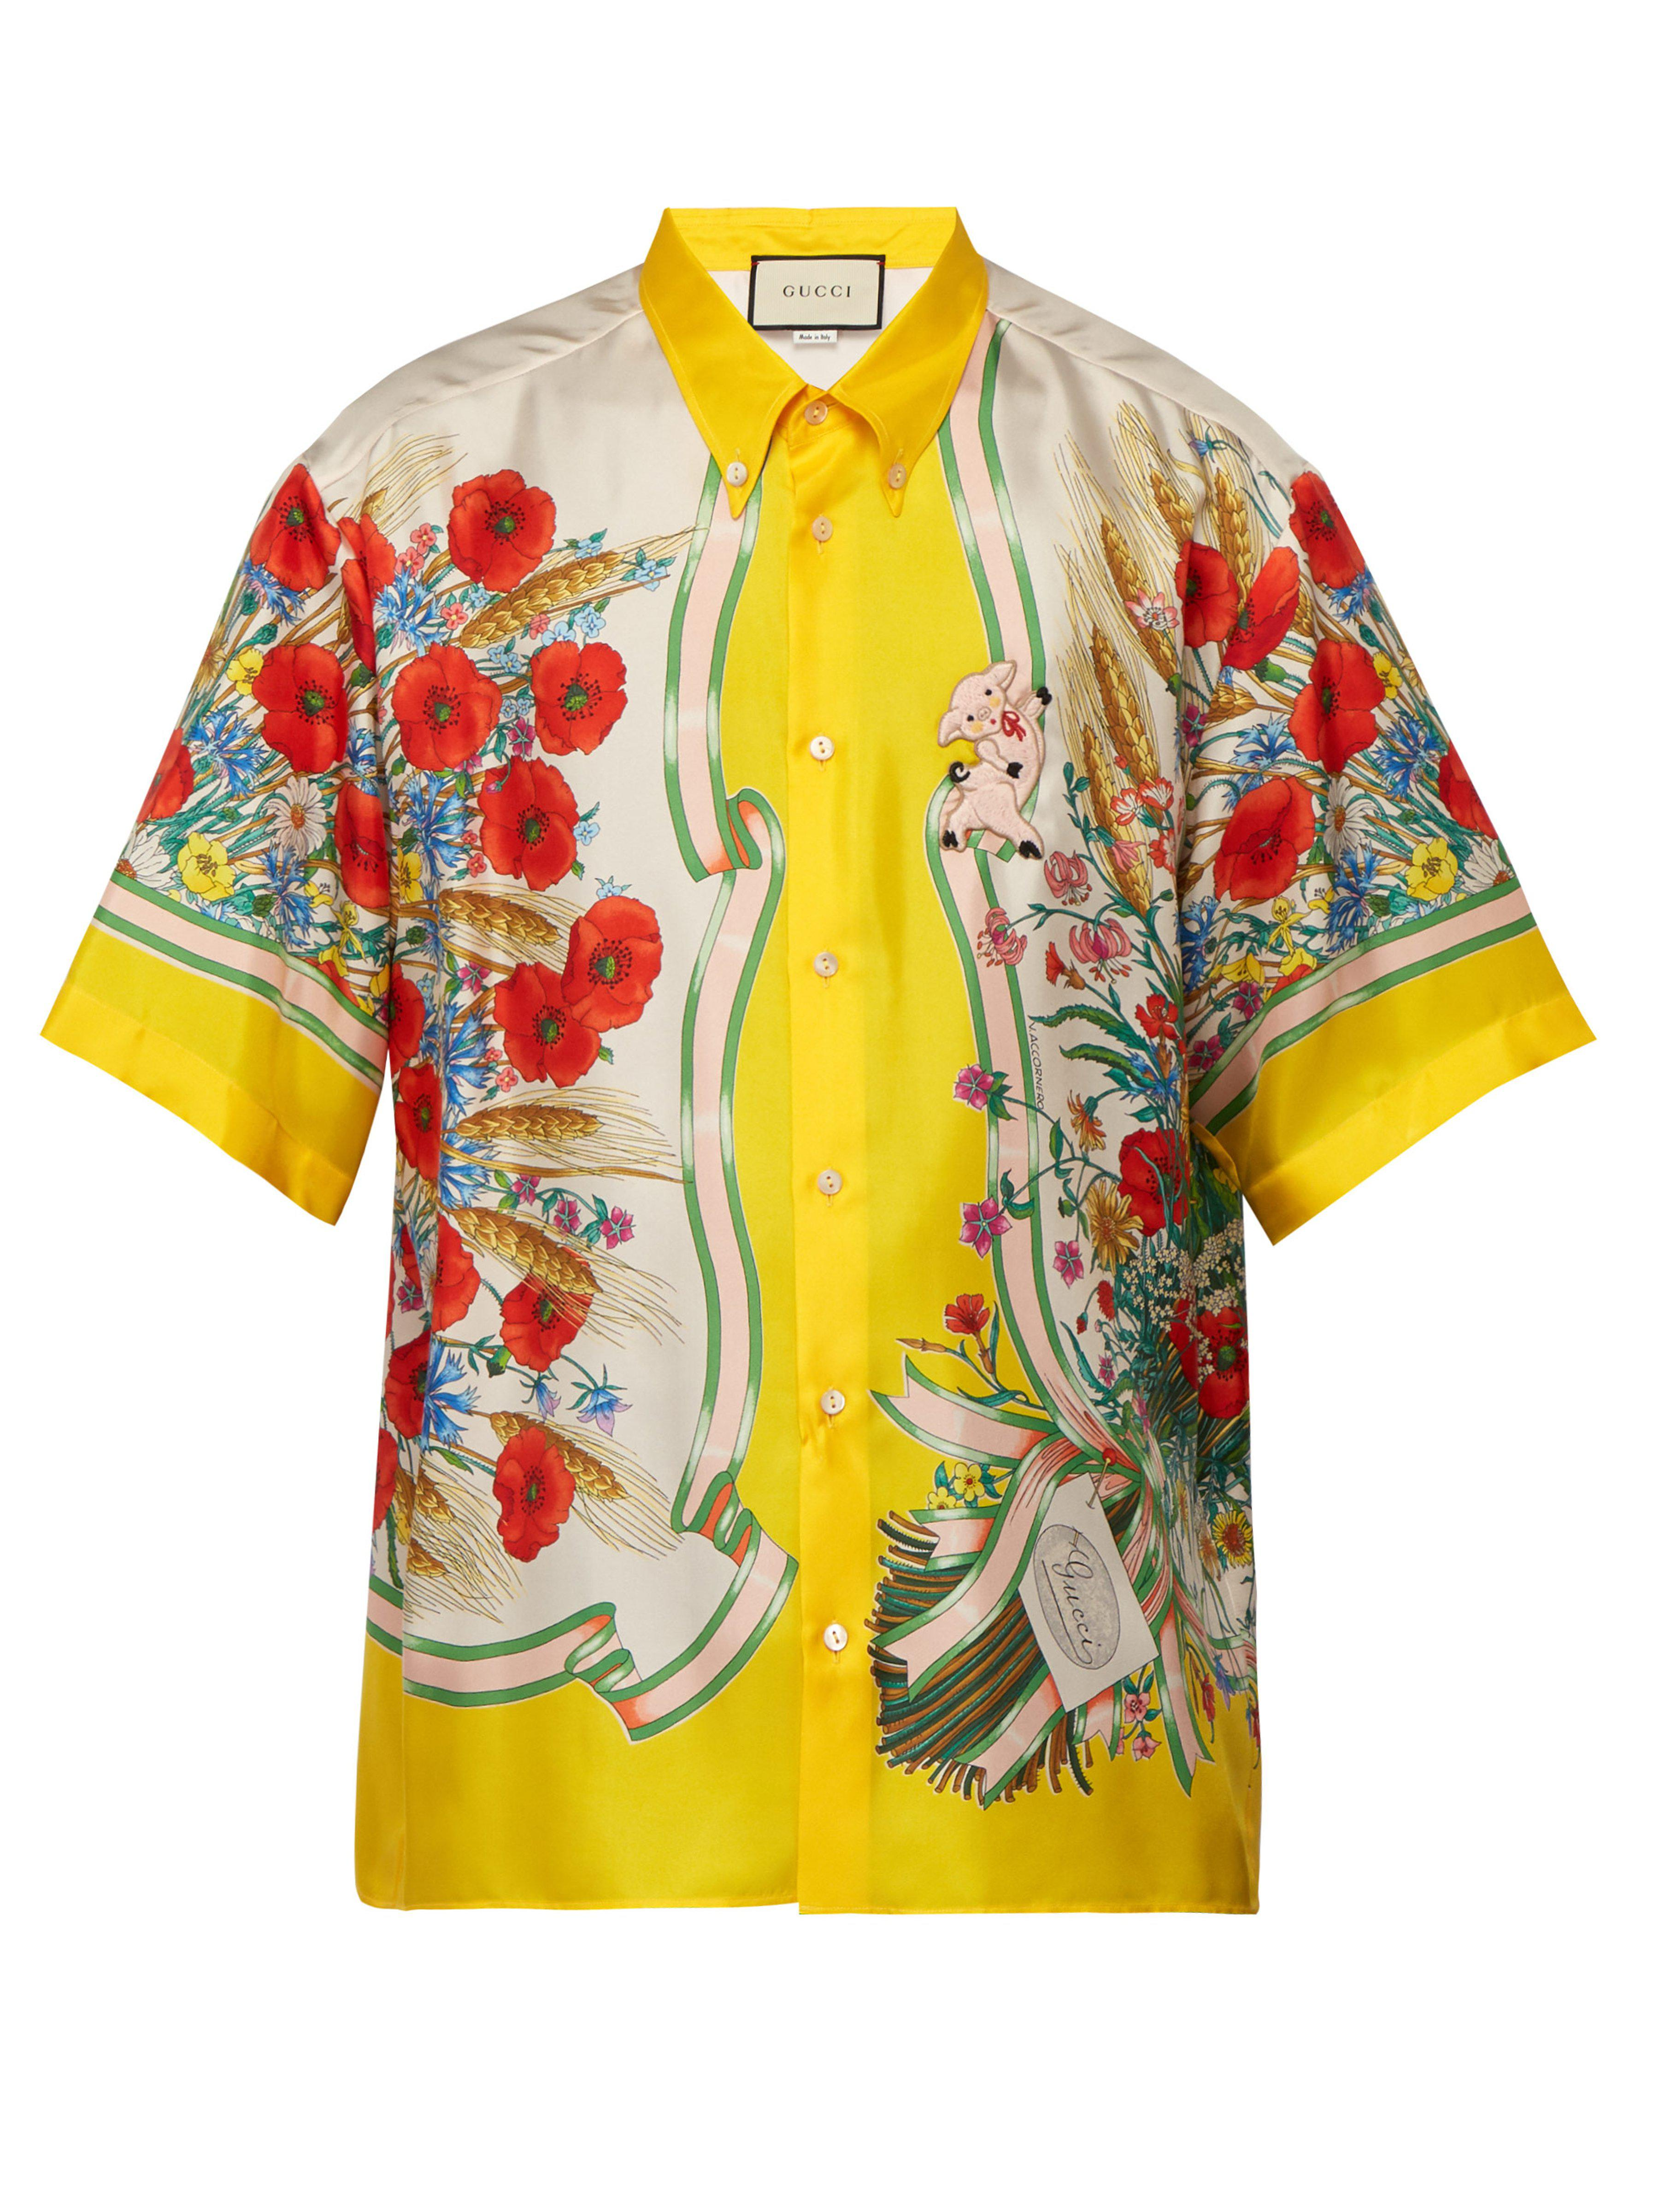 512de4d3fcd Gucci Floral Print Silk Twill Shirt in Yellow for Men - Save 21% - Lyst